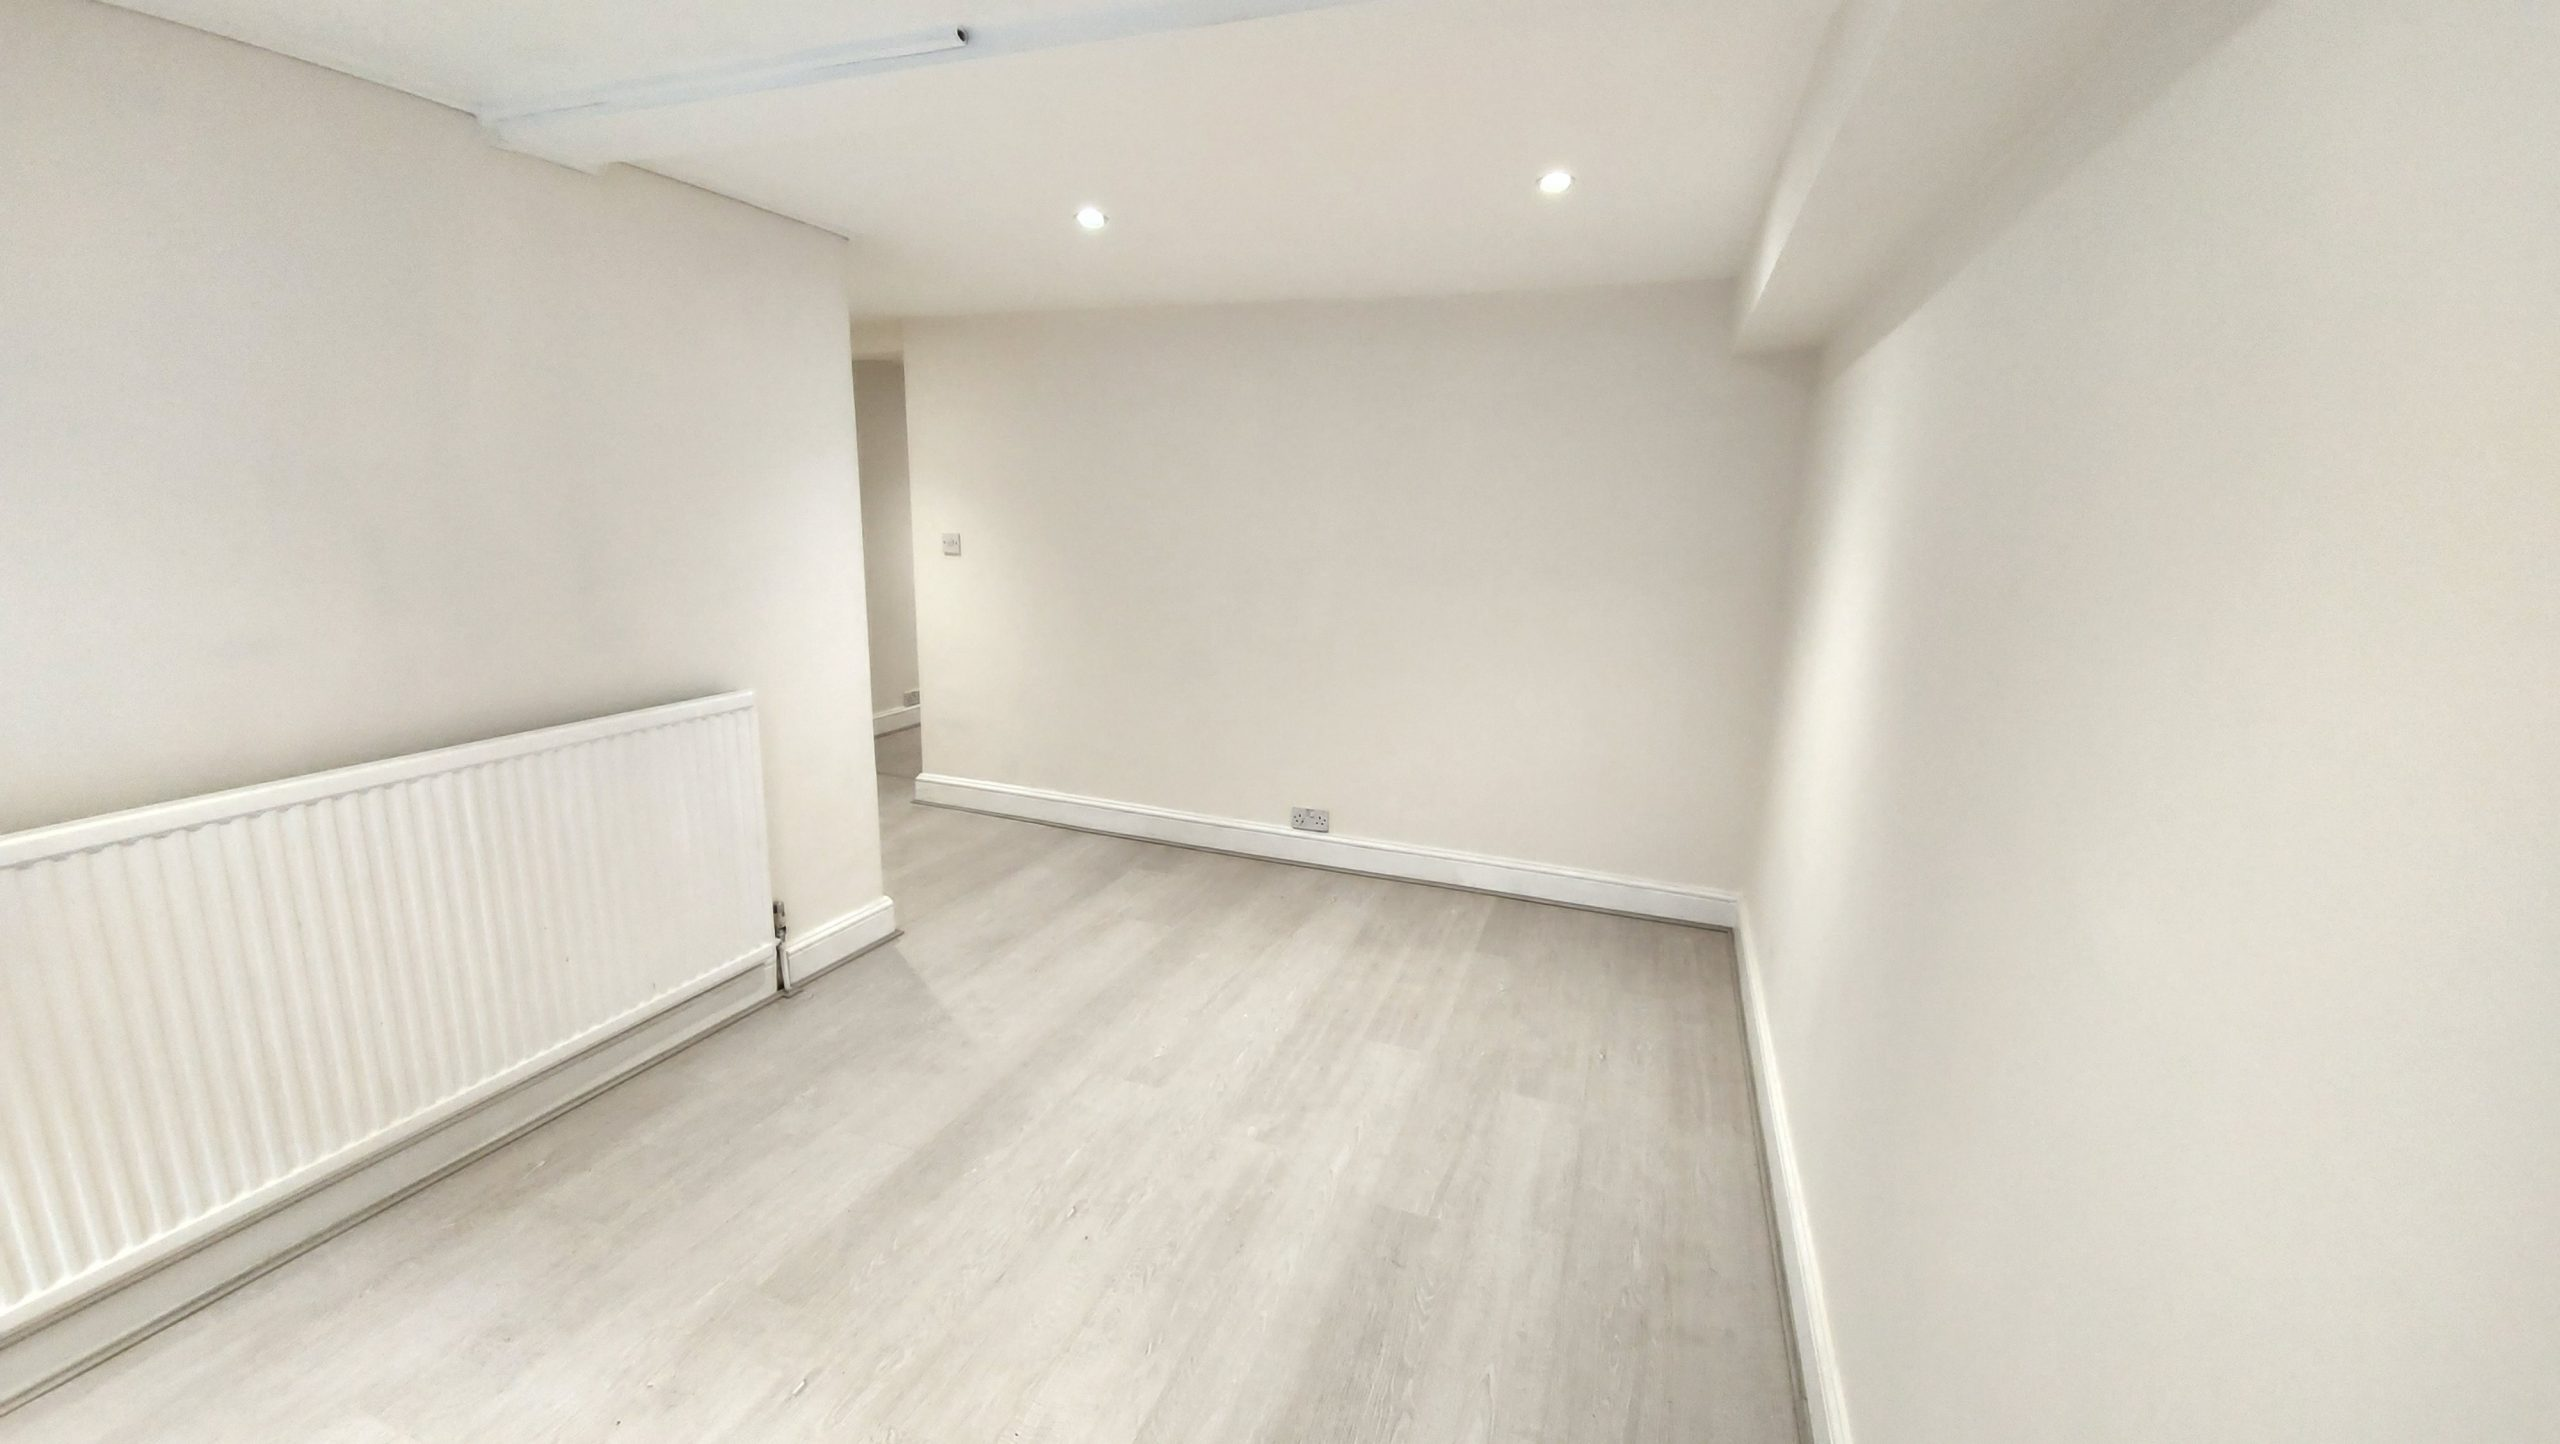 2 Bed Marchmont Street WC1N 1AP